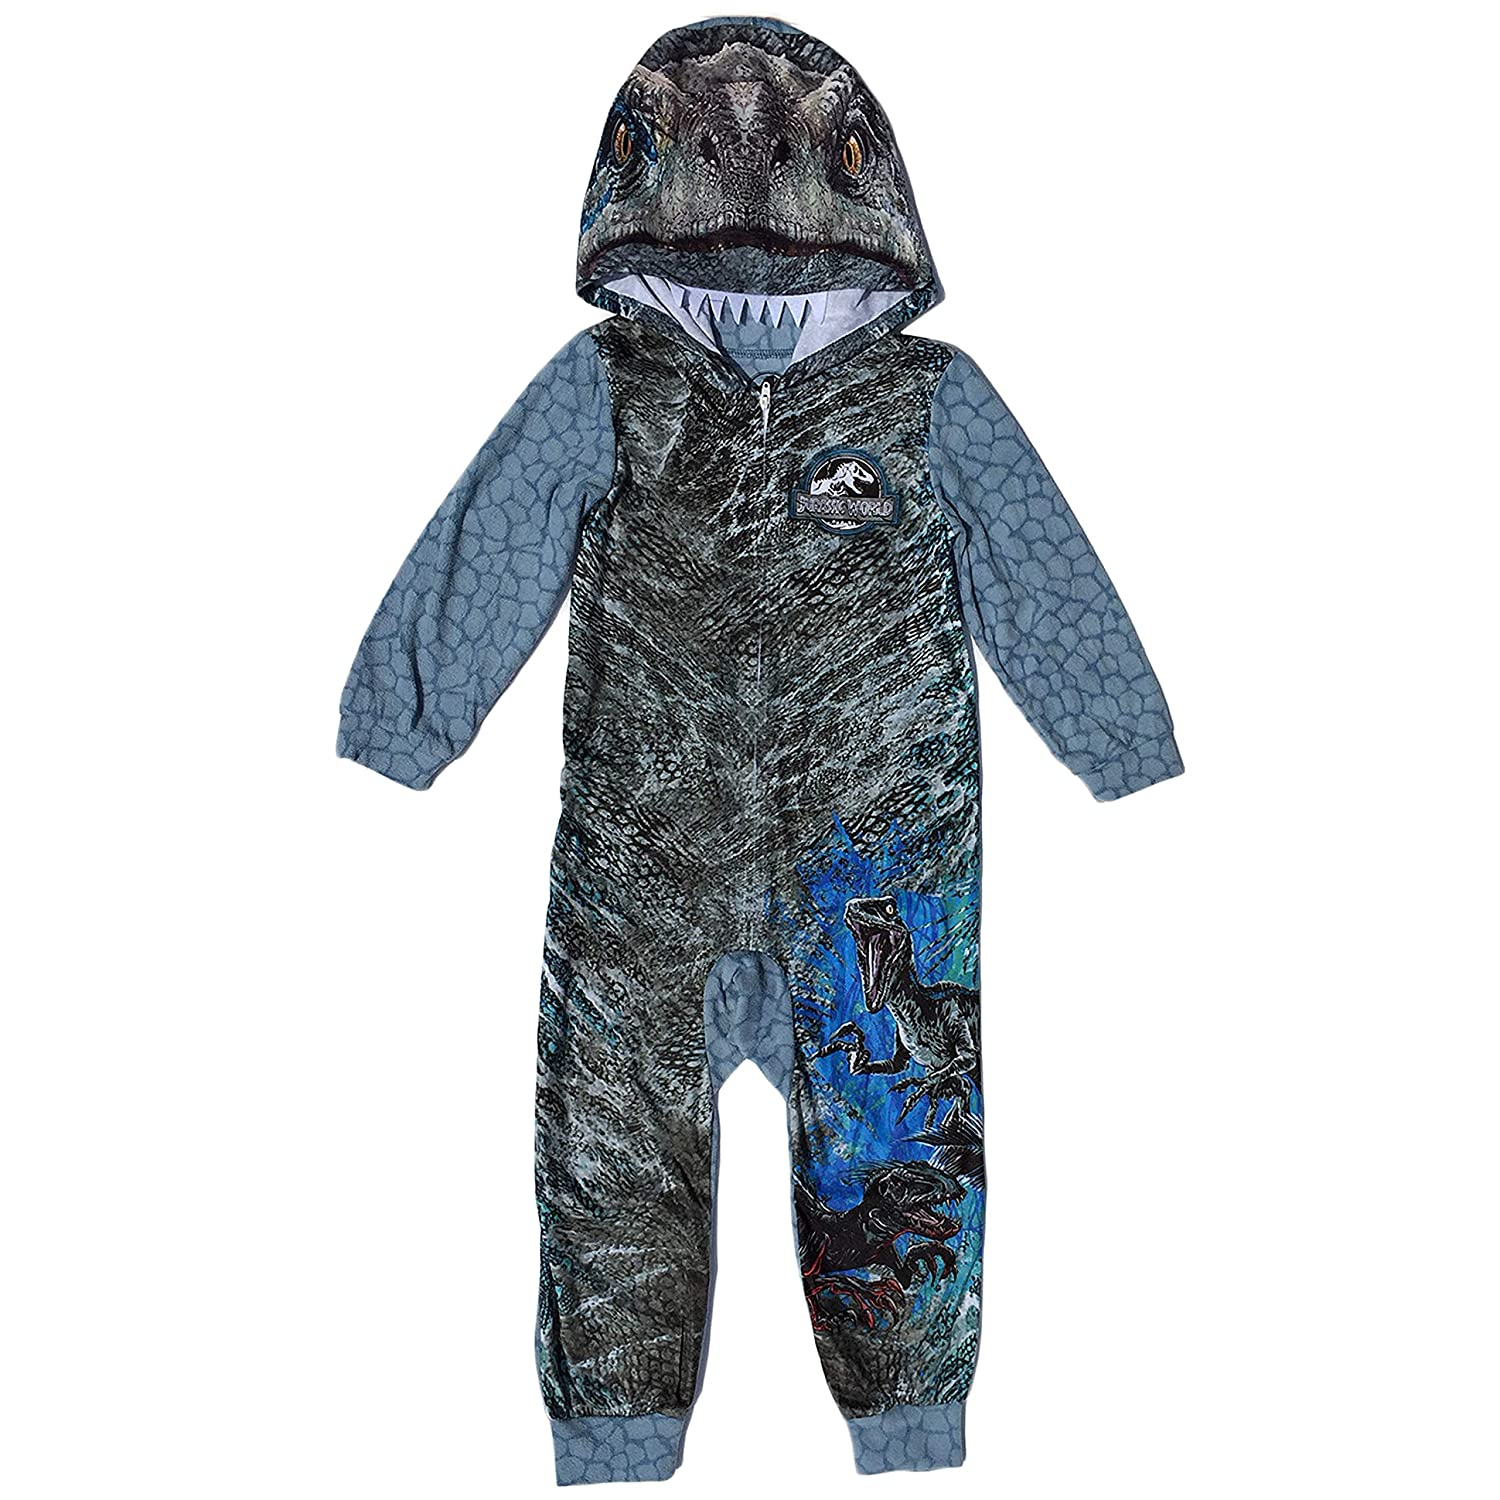 AME Jurassic World Blue Raptor Fleece Hooded Union Suit Boys Pajamas 4-16